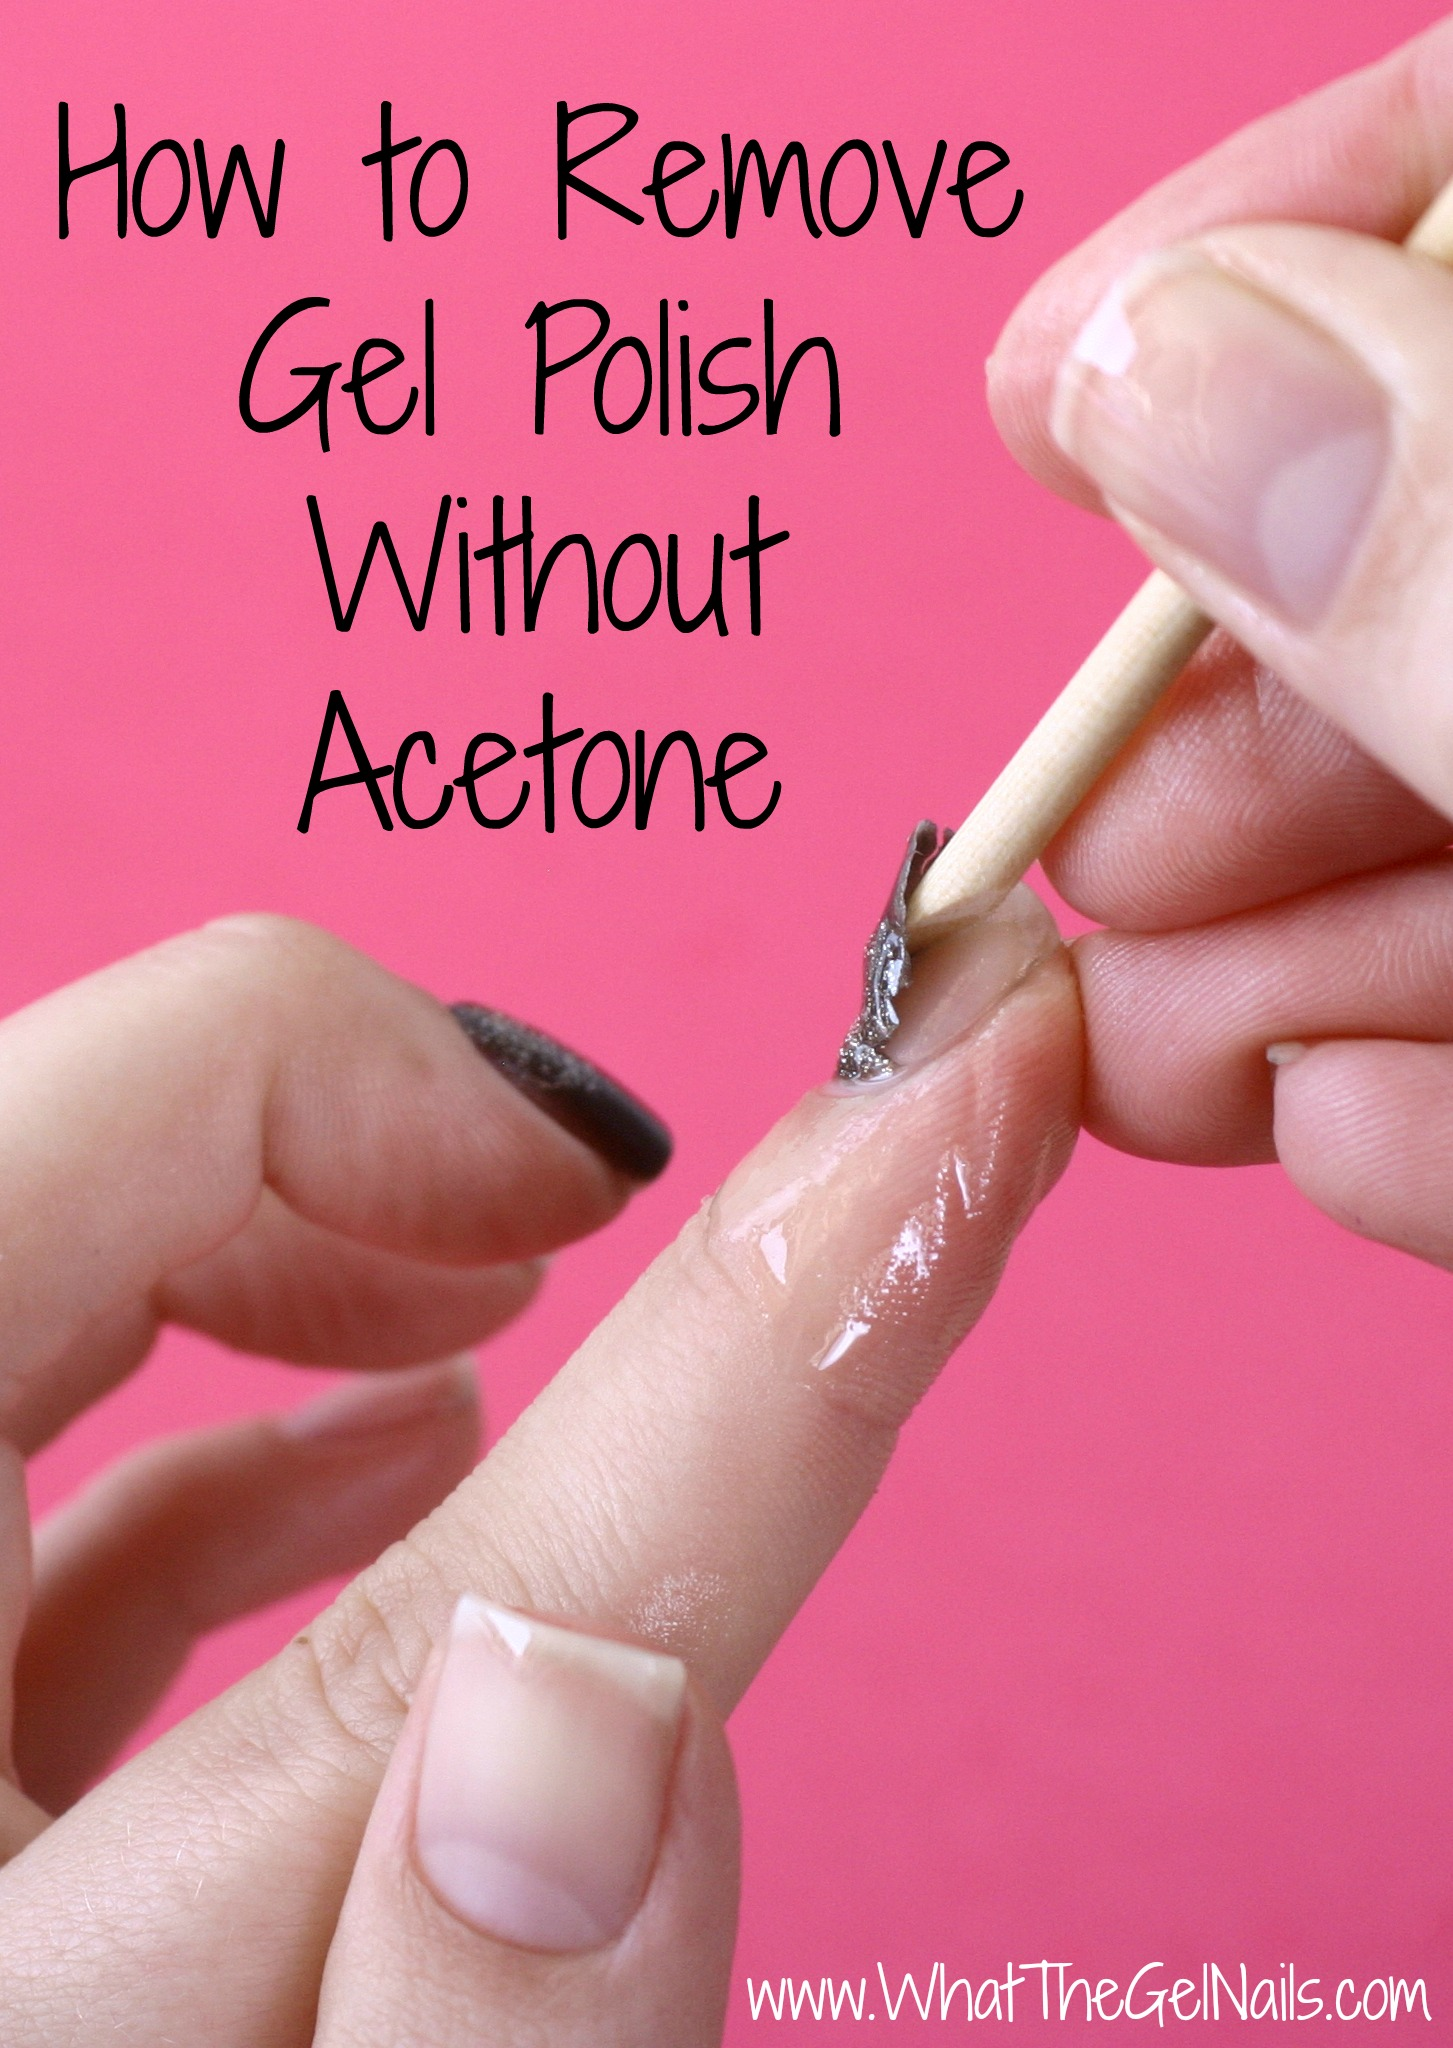 How to remove gel polish without acetone remove gel polish without acetone solutioingenieria Image collections